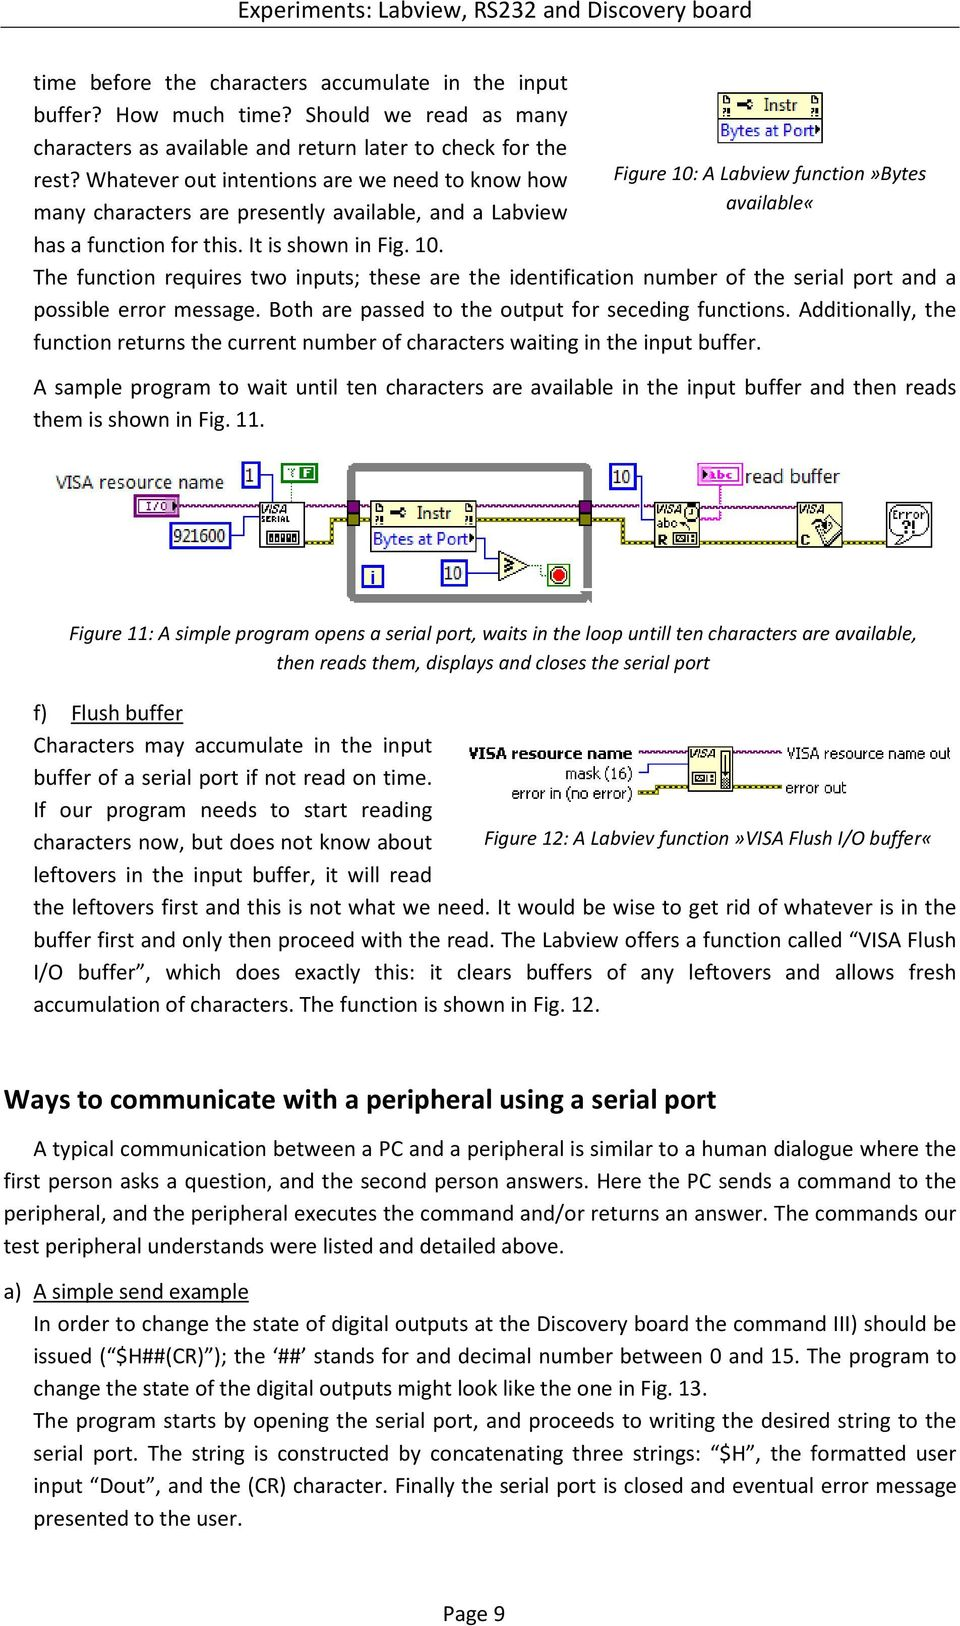 Experiments: Labview and RS232 - PDF